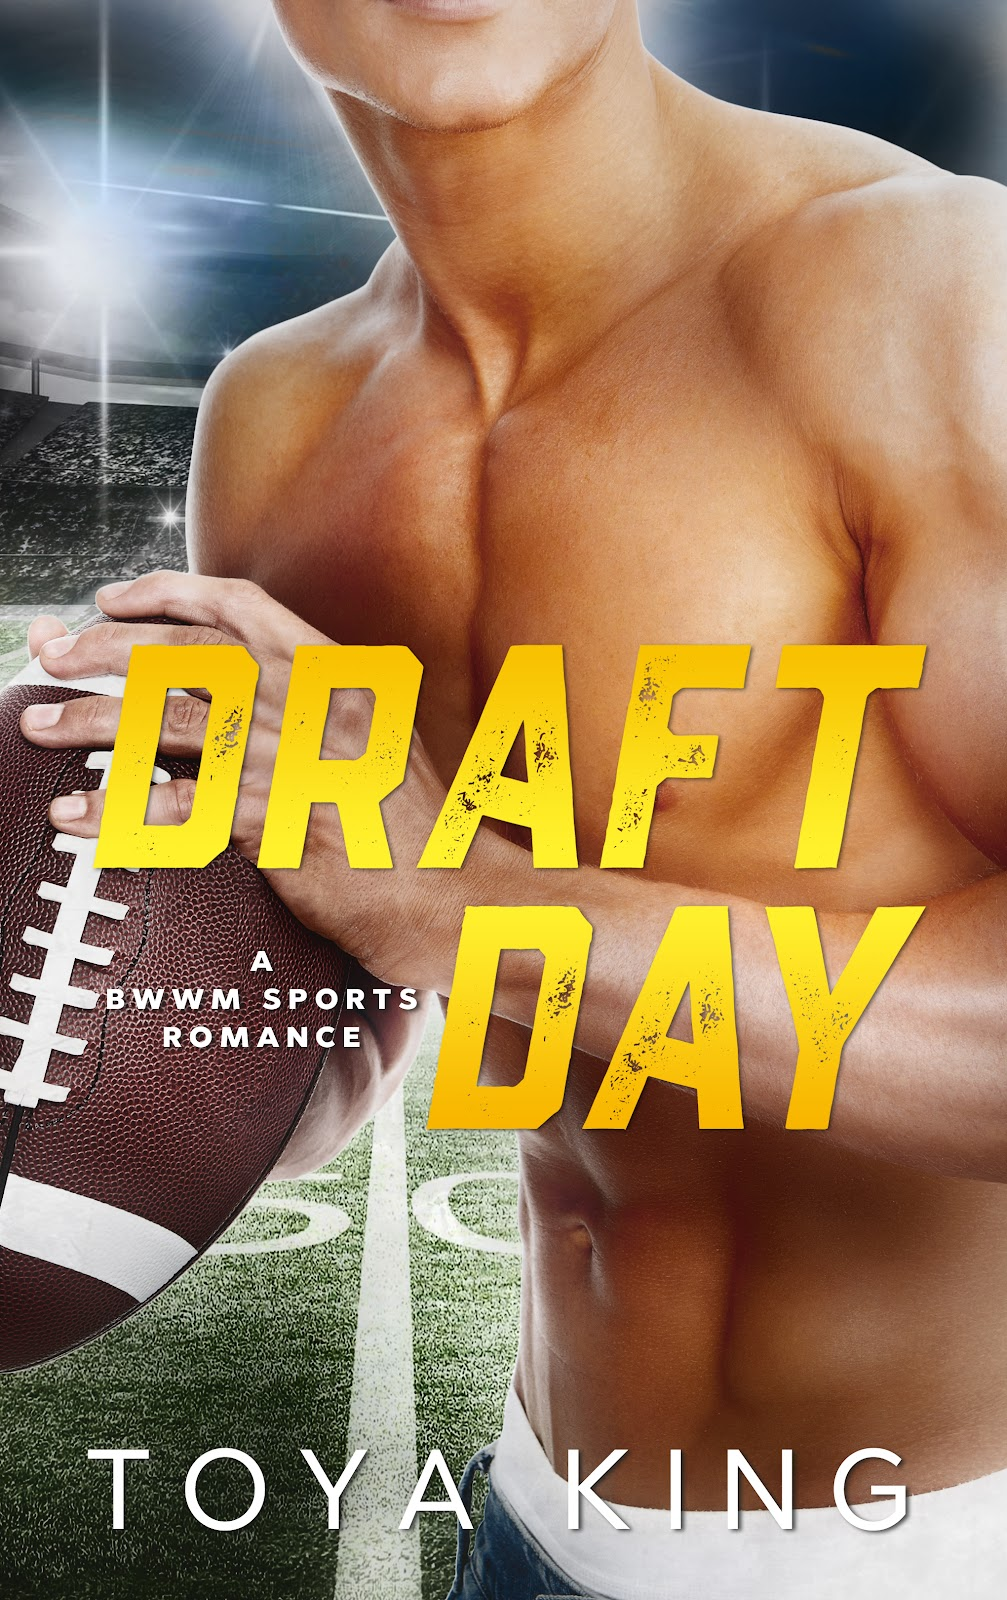 tkdraftdaybookcover5x8_bw_high1